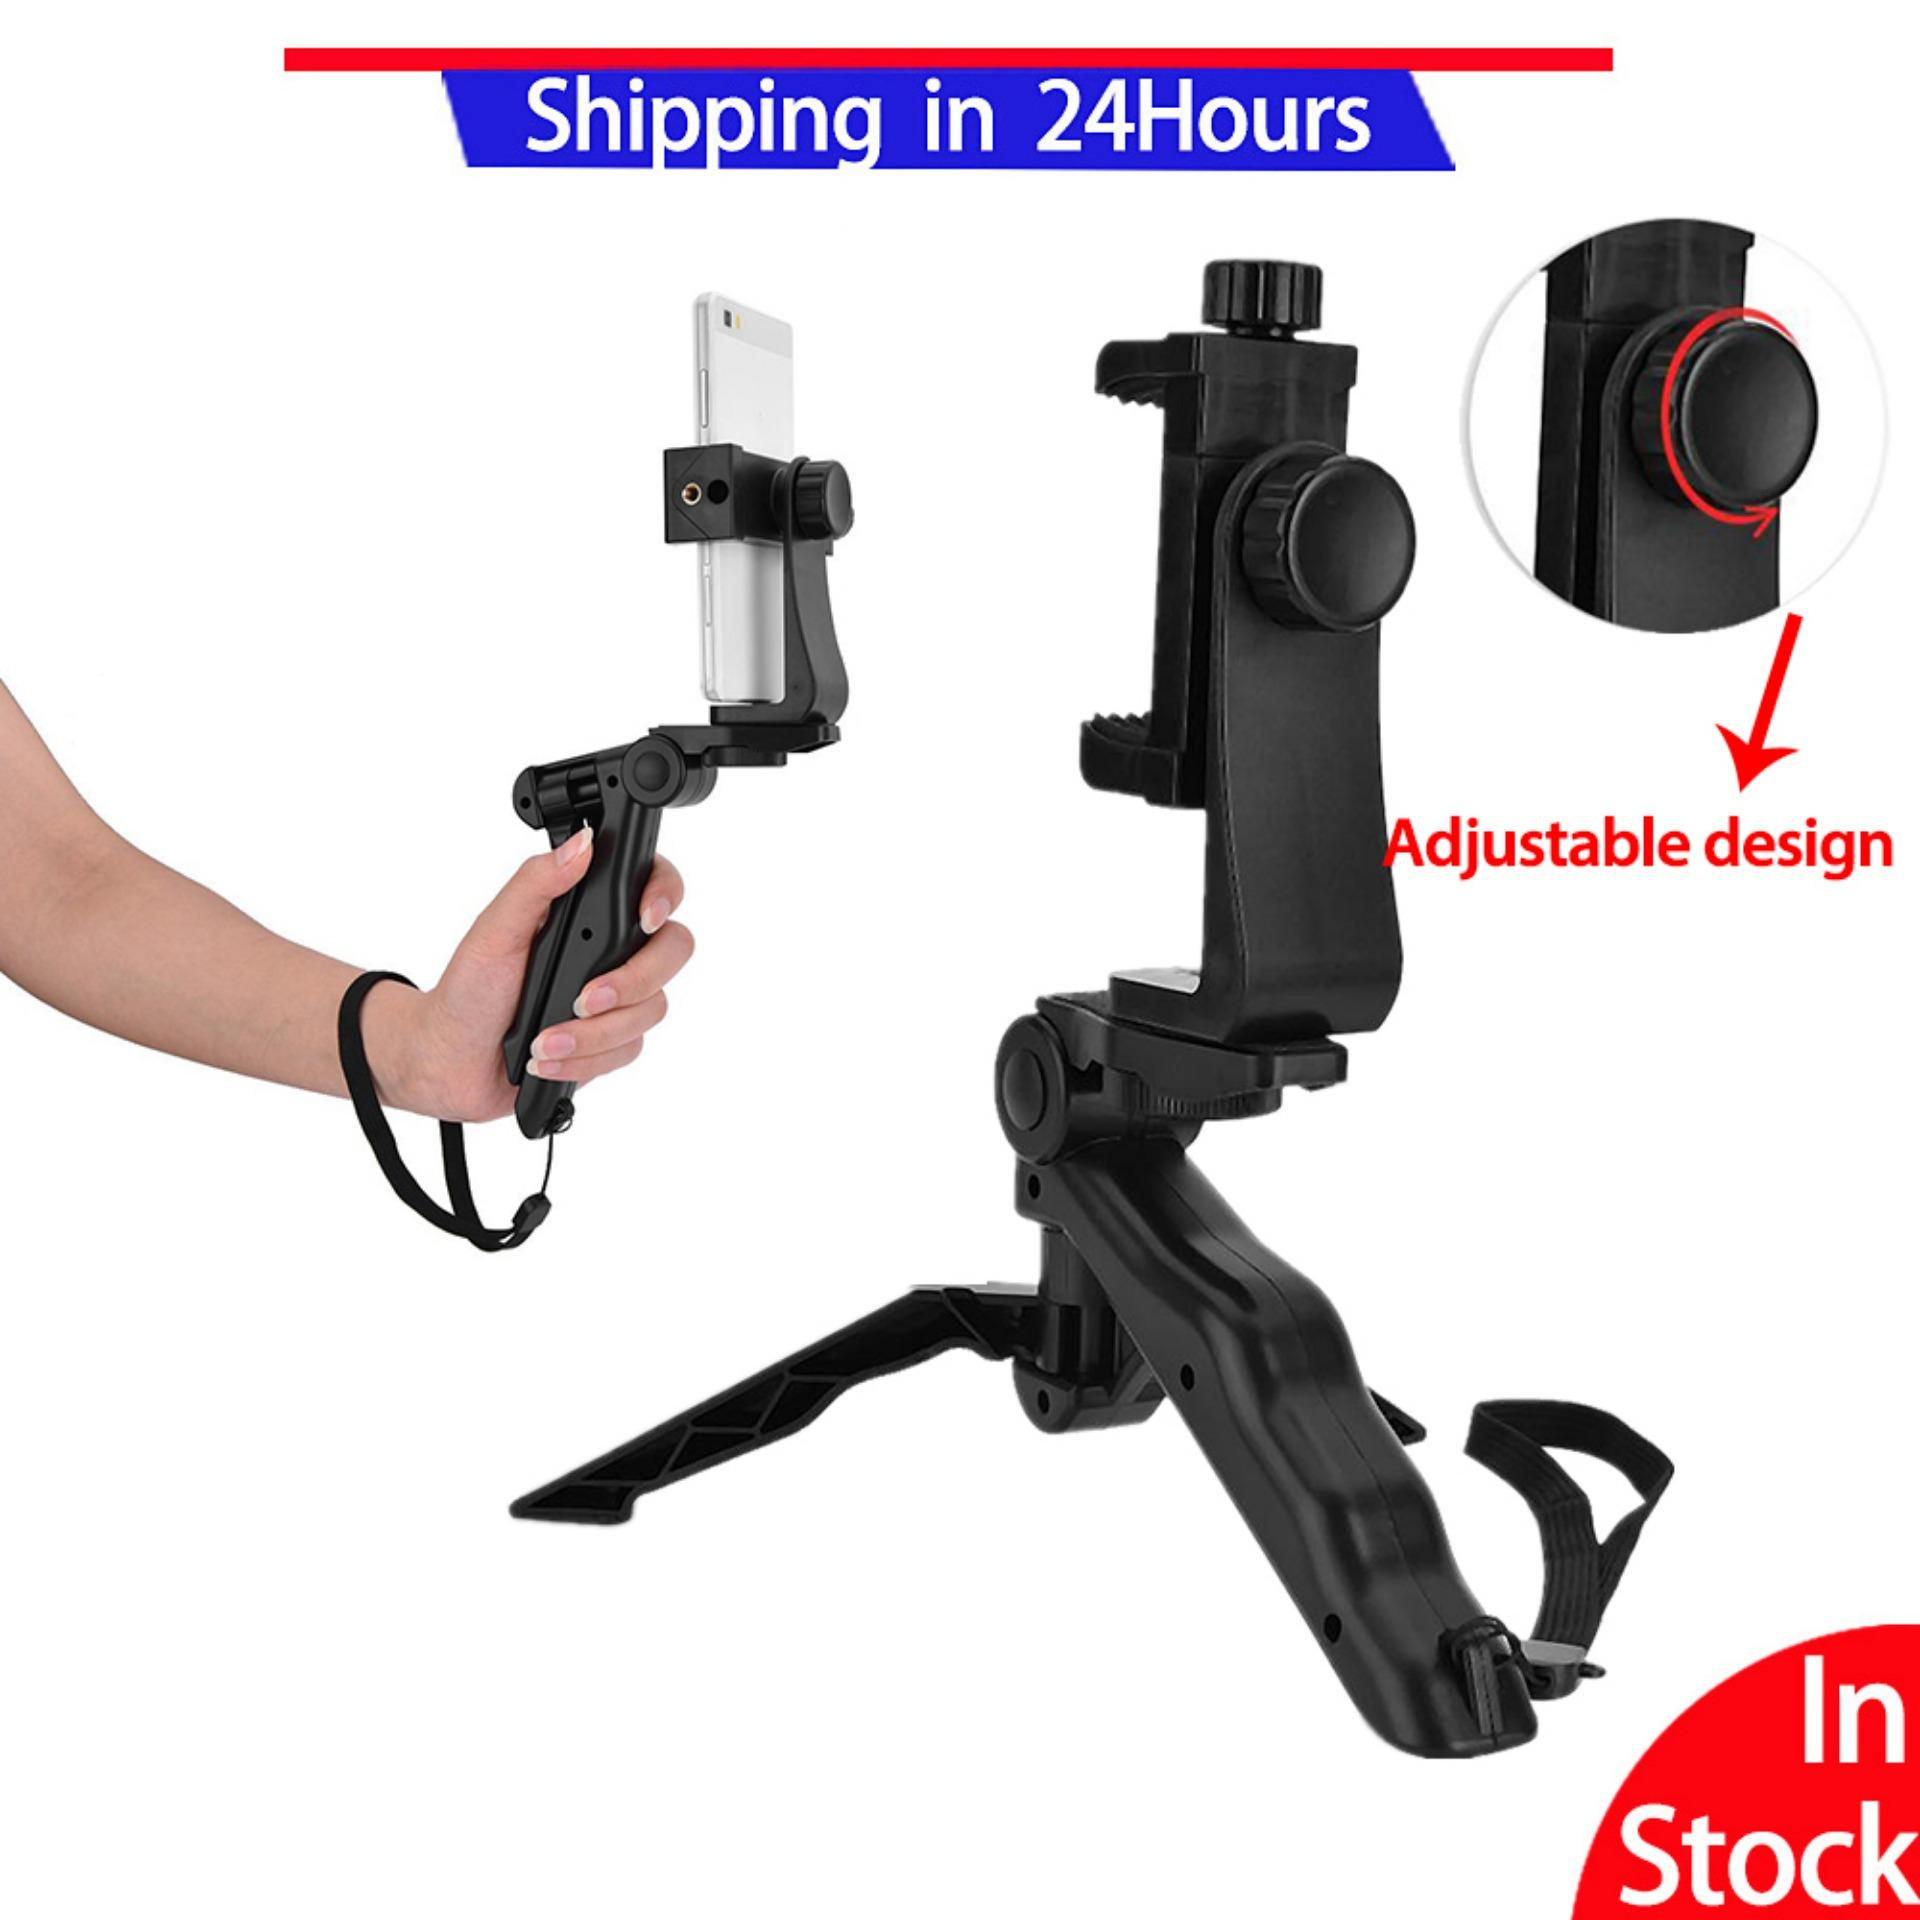 【flexibility】fashionf Phone Holder Tripod Handheld Stabilizer Hand Grip Mount For Smartphone,is A Bracket Which Can Compatible With All Brands And Devices,remove Your Device Easily And Quickly With A Push-Button Release. By Fashionf Mall.